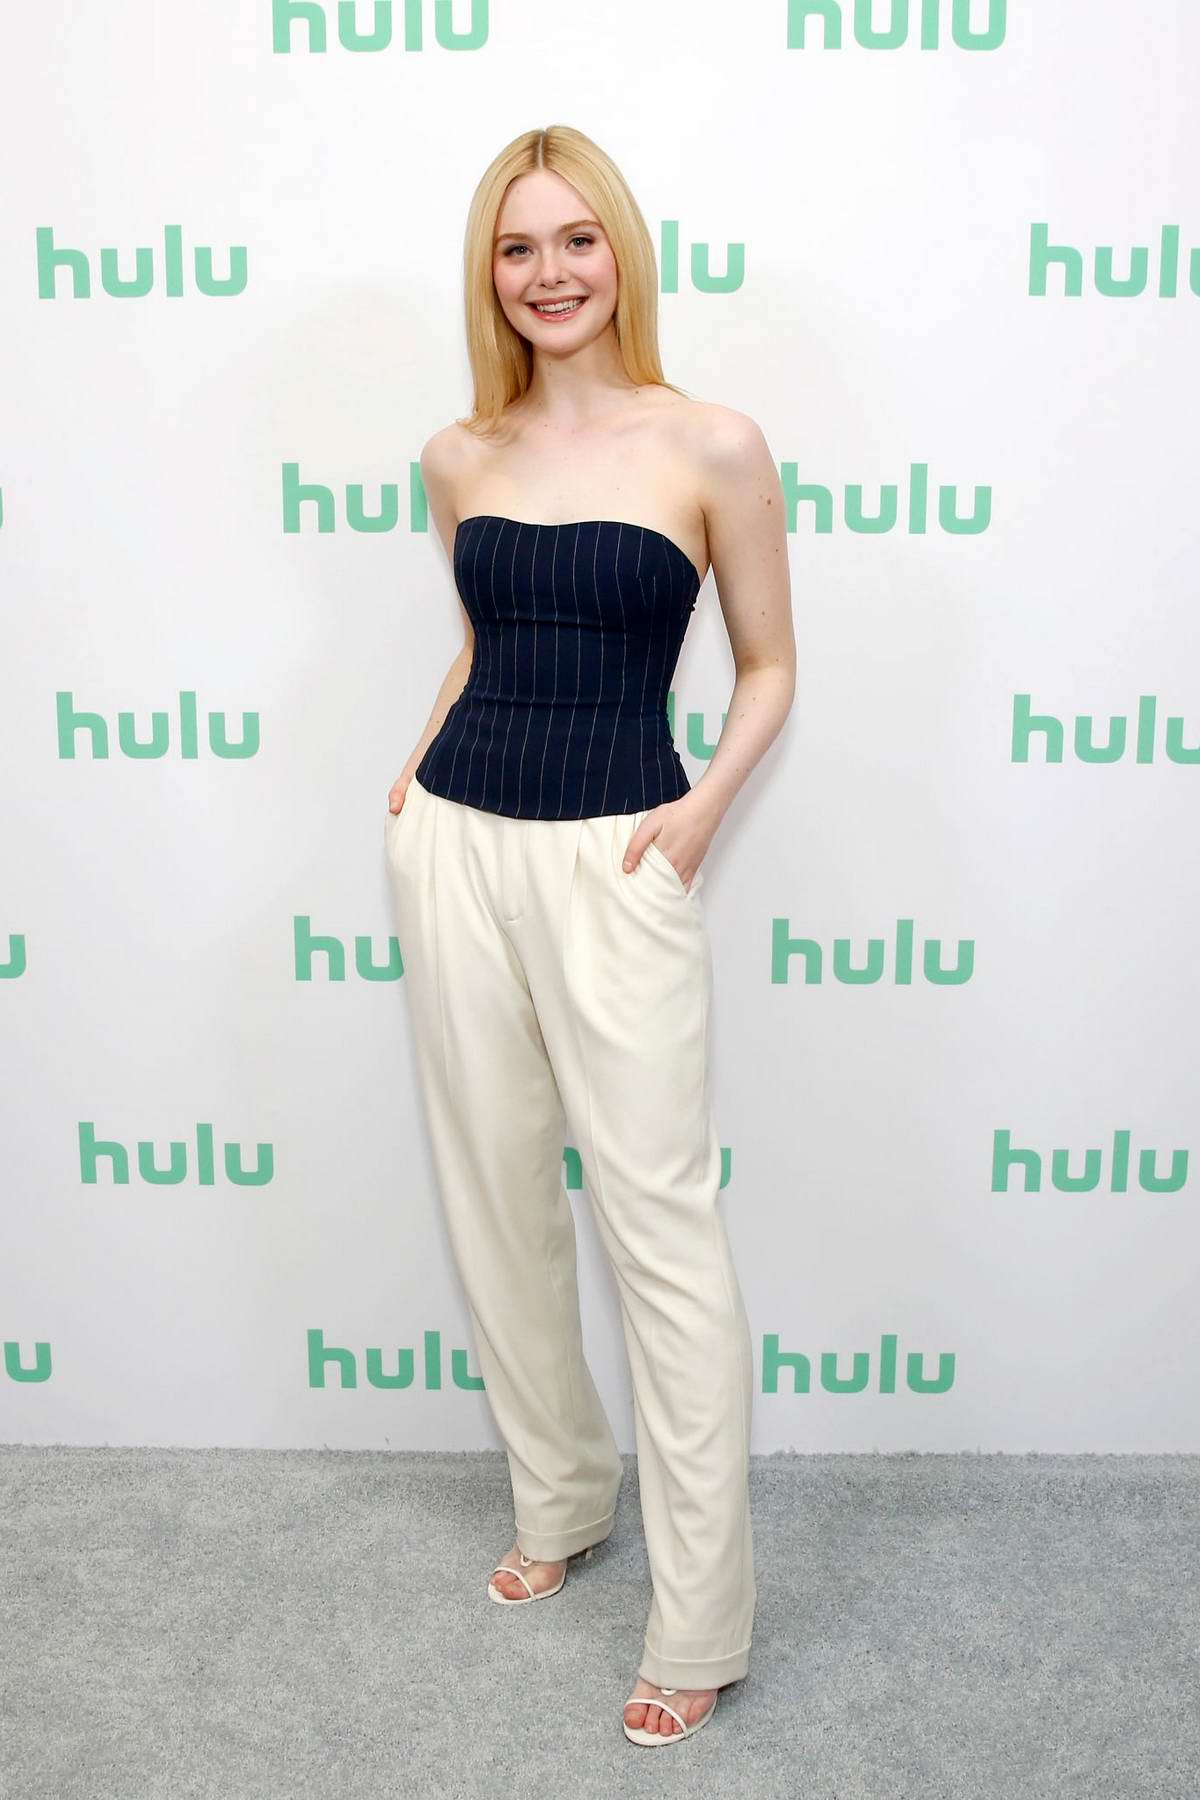 Elle Fanning attends the Hulu Winter TCA 2020 panel at The Langham in Pasadena, California